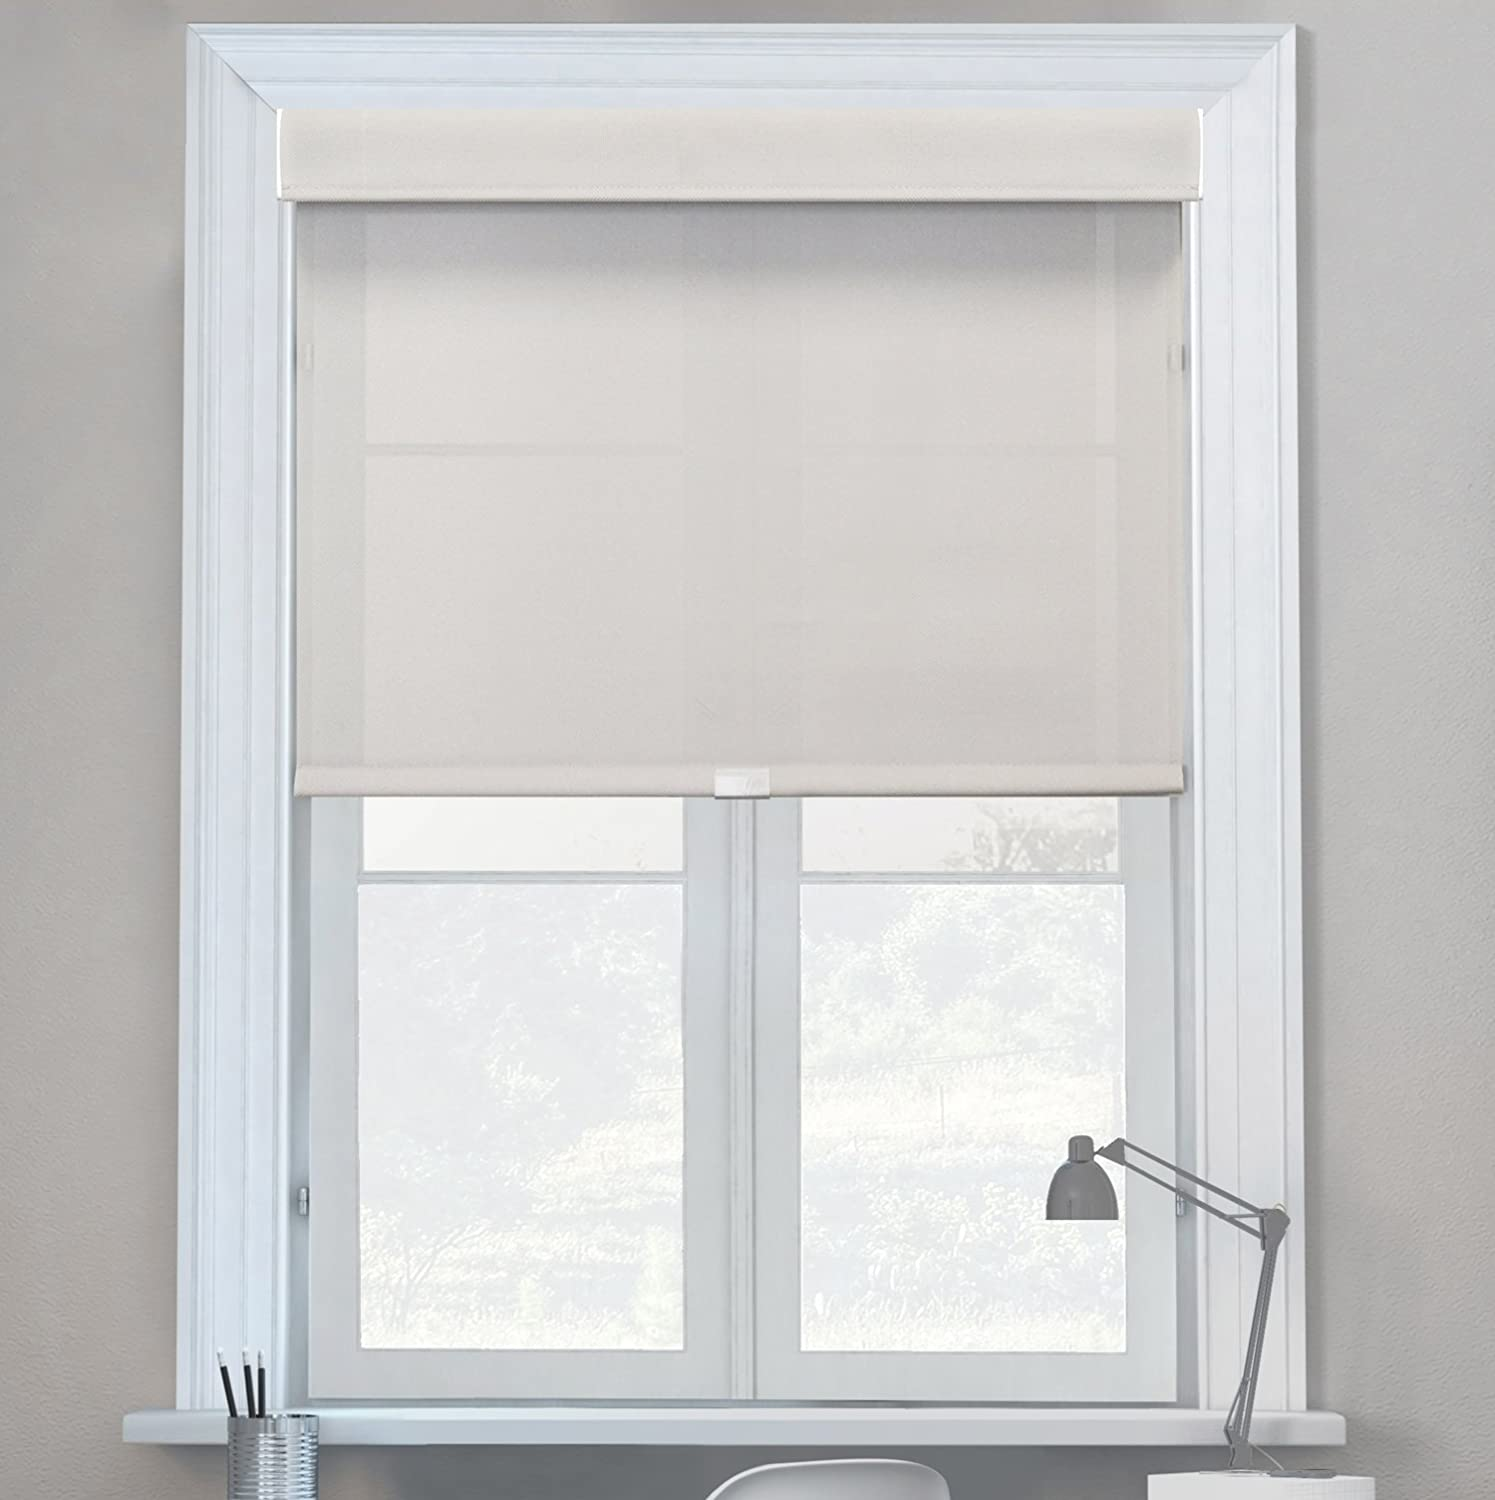 Chicology Free-Stop Cordless Roller Shades - 23W X 72H No Tug Privacy Window Blind Privacy /& Natural Woven Cabana Sand